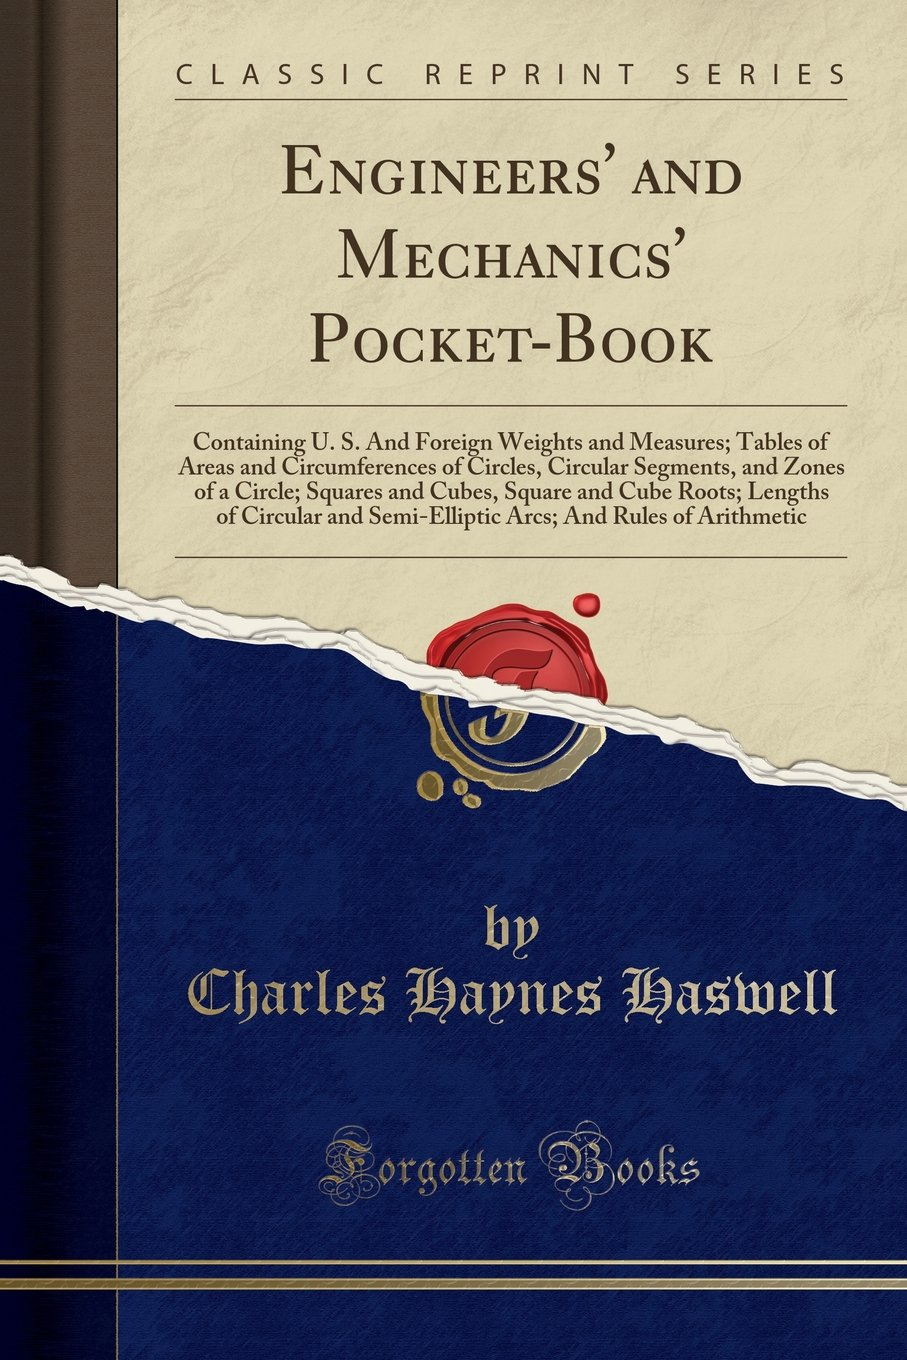 Download Engineers' and Mechanics' Pocket-Book: Containing U. S. And Foreign Weights and Measures; Tables of Areas and Circumferences of Circles, Circular ... Roots; Lengths of Circular and Semi-Ellip pdf